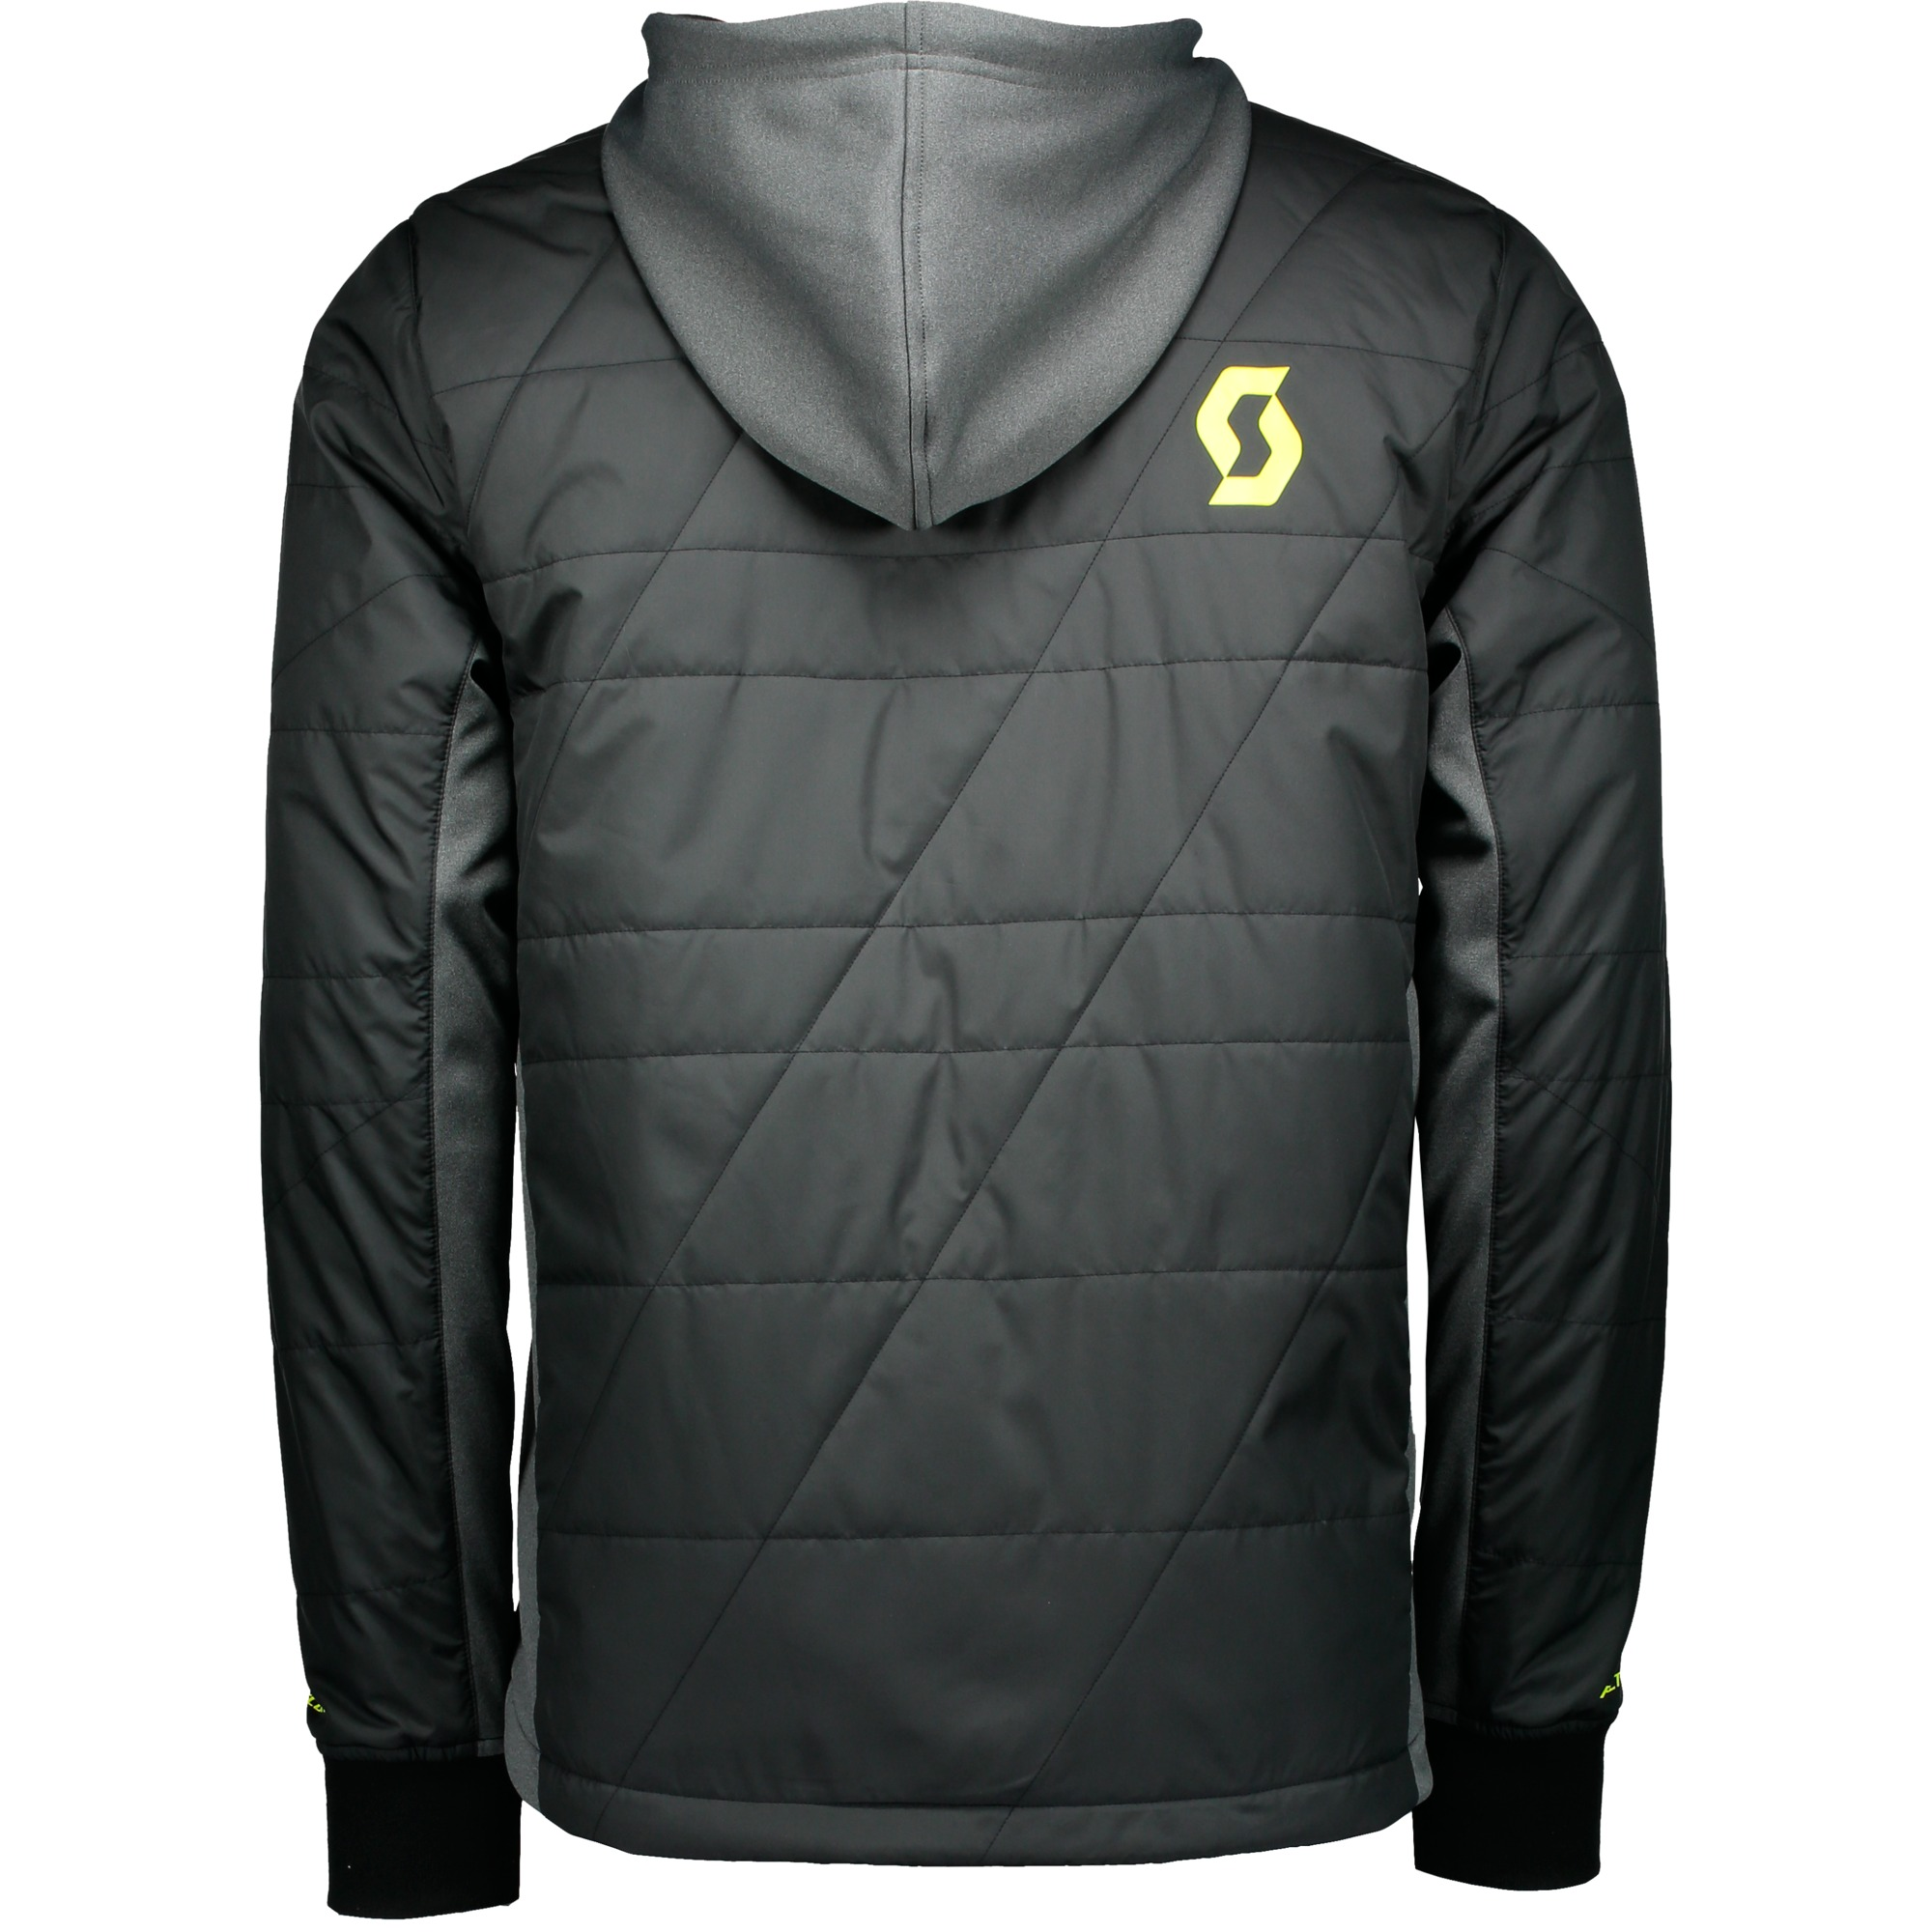 SCOTT Factory Team Insulation Jacket